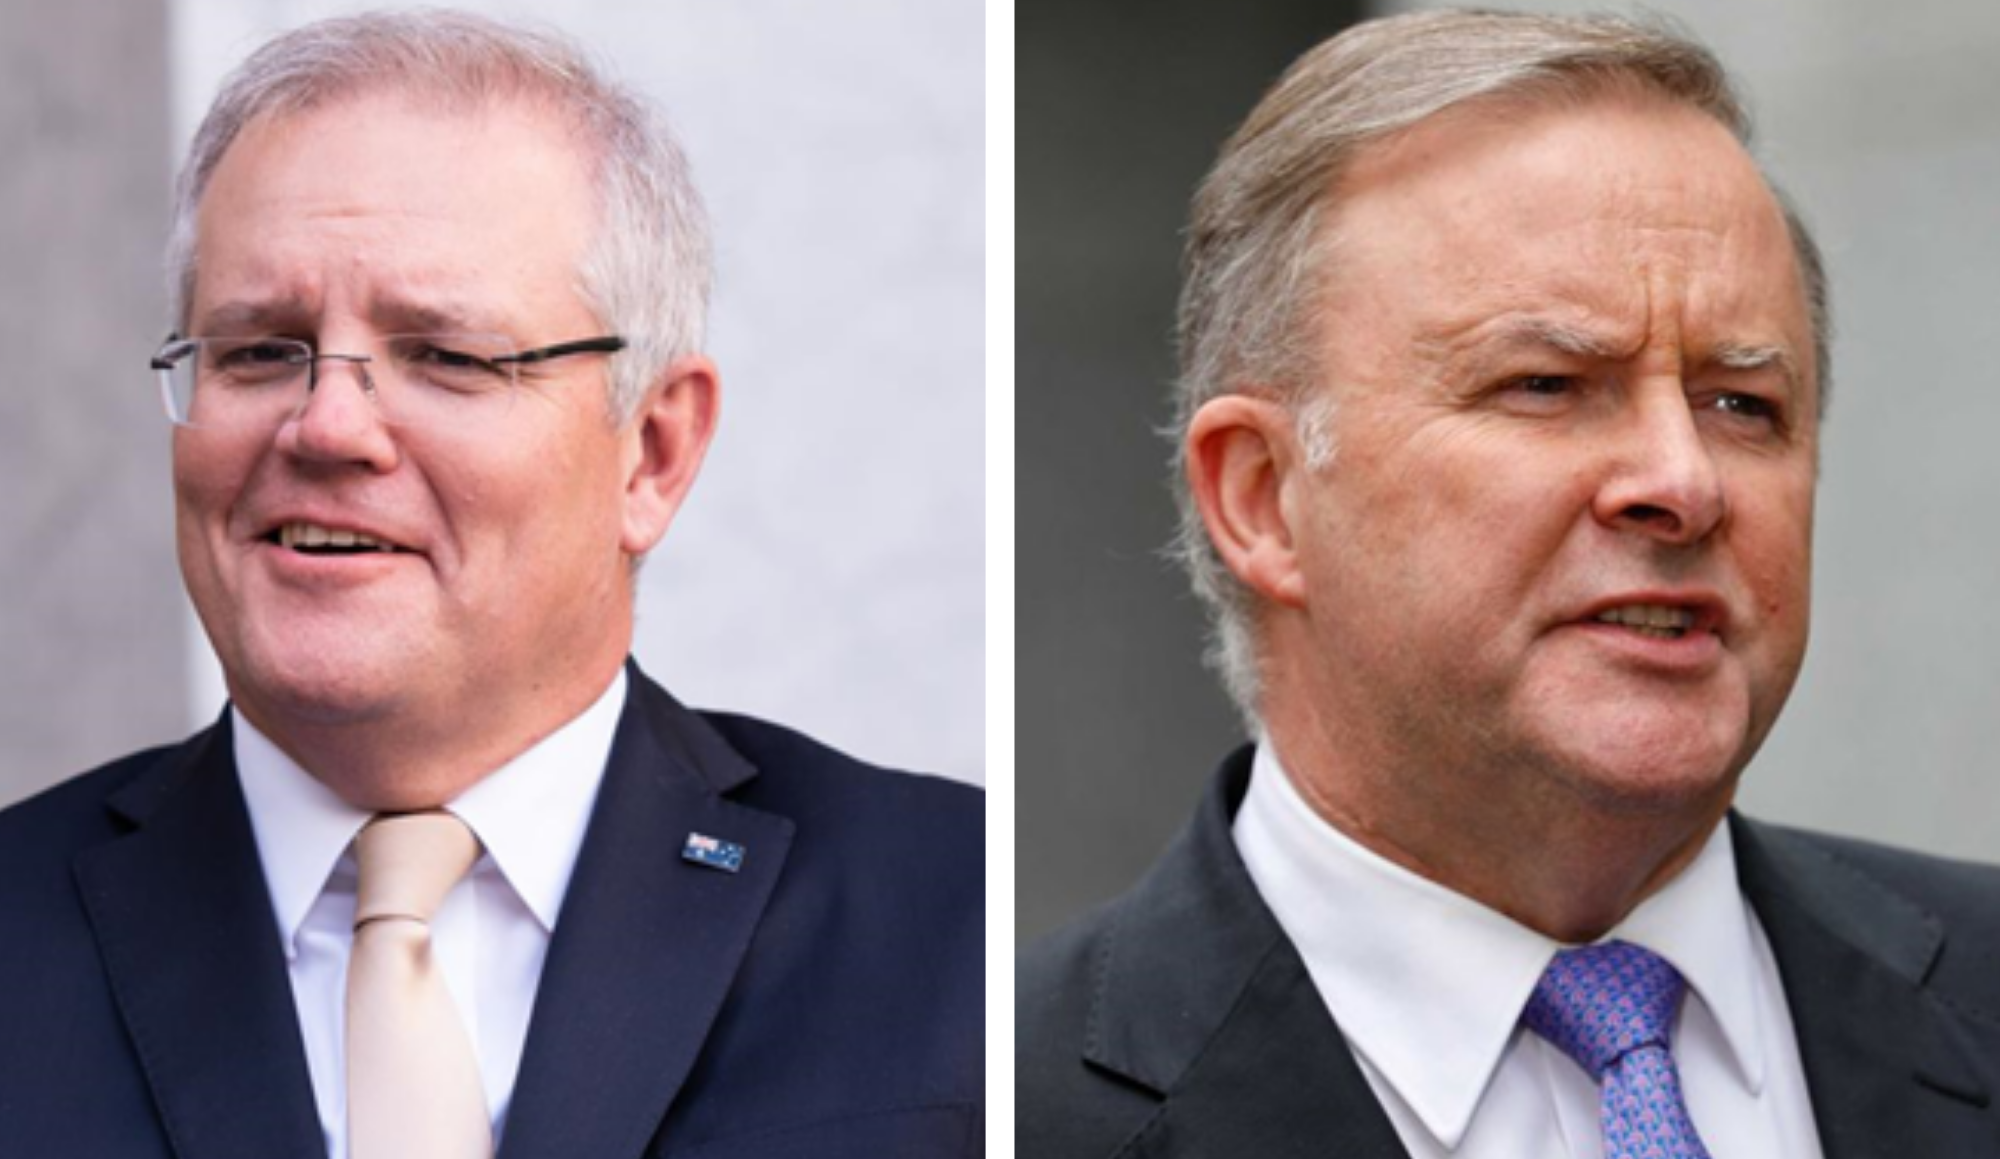 ONE YEAR ON FROM THE 2019 FEDERAL ELECTION: WHAT HAVE WE LEARNT?